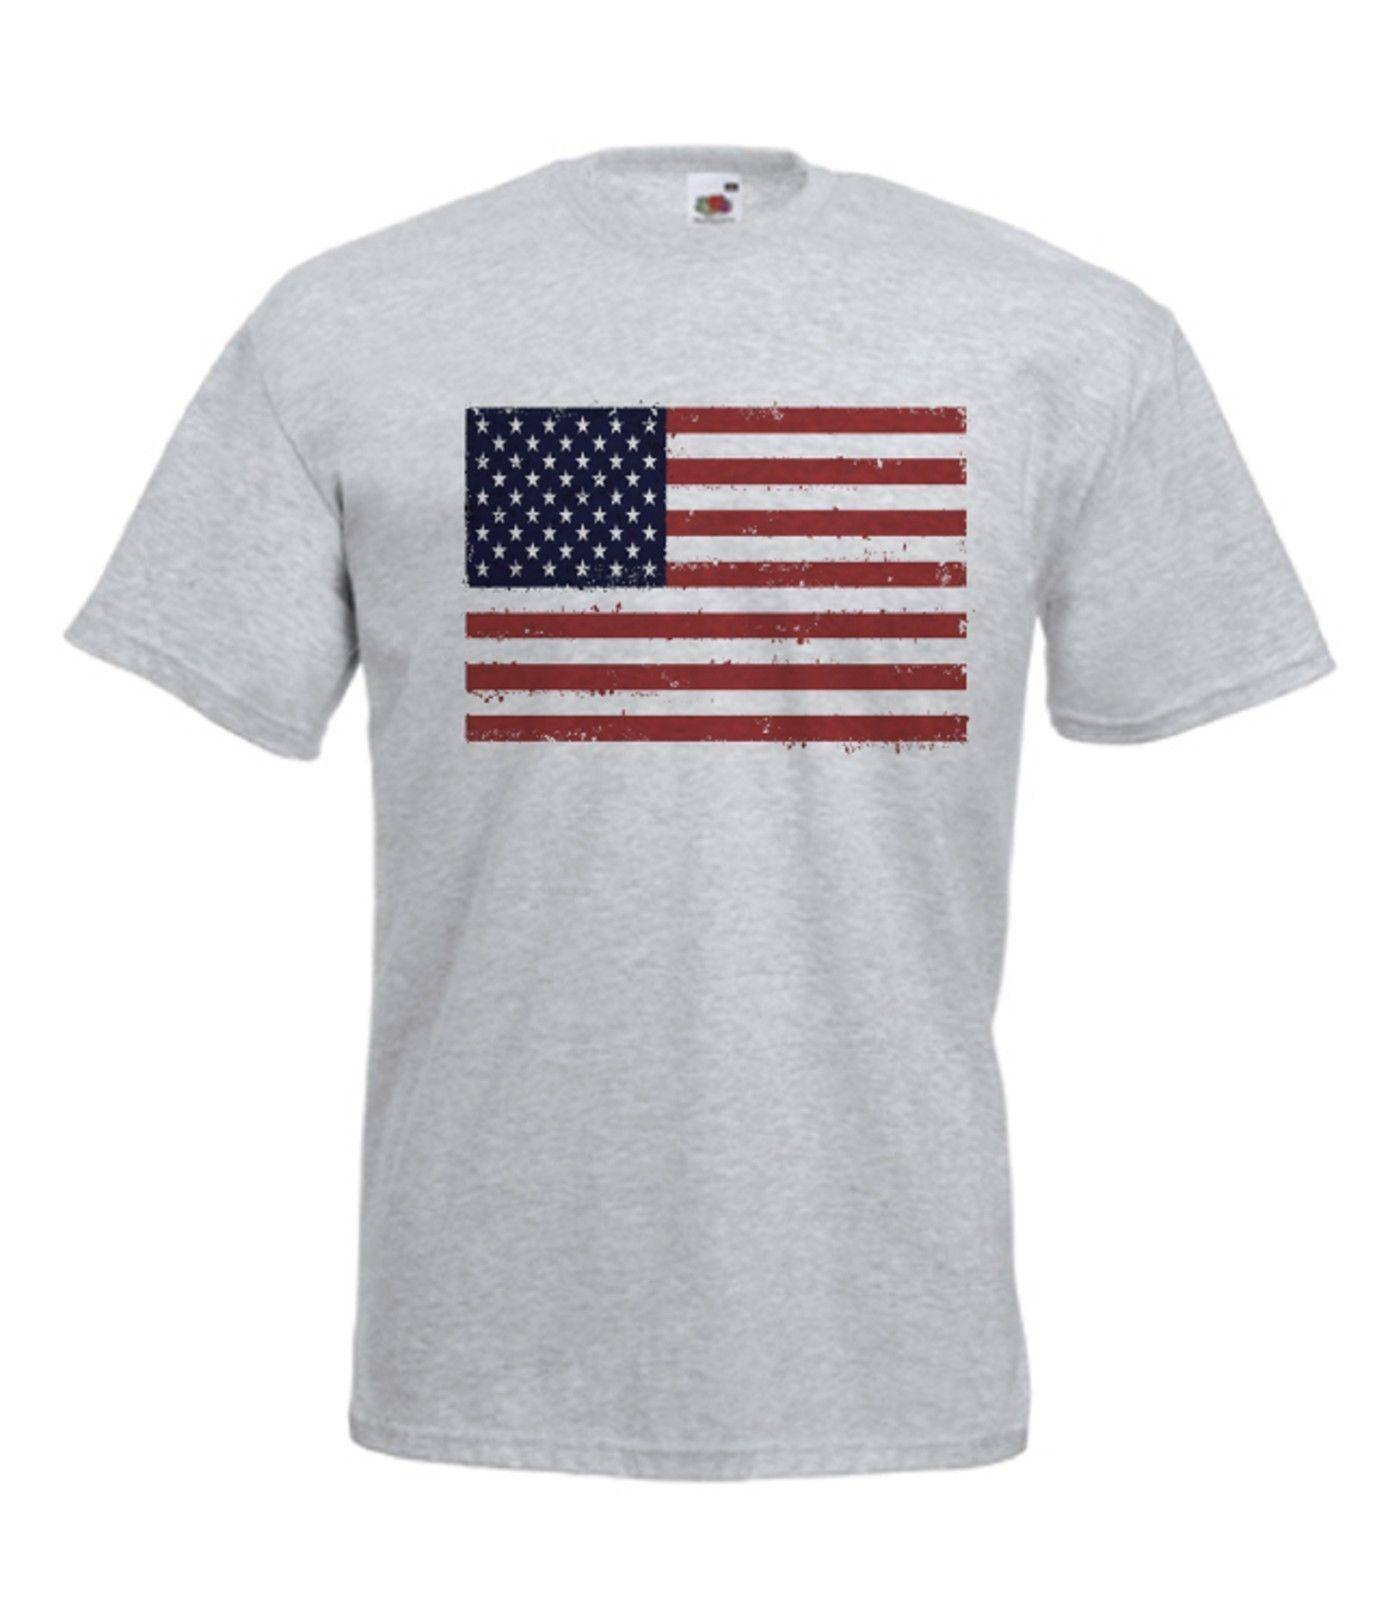 USA FLAG AMERICA Army Gift NEW Xmas Birthday Ideas Boys Girls Top T SHIRT TOP Print Mens Pride Dark Shirt Buy Shirts Online From Mooncup